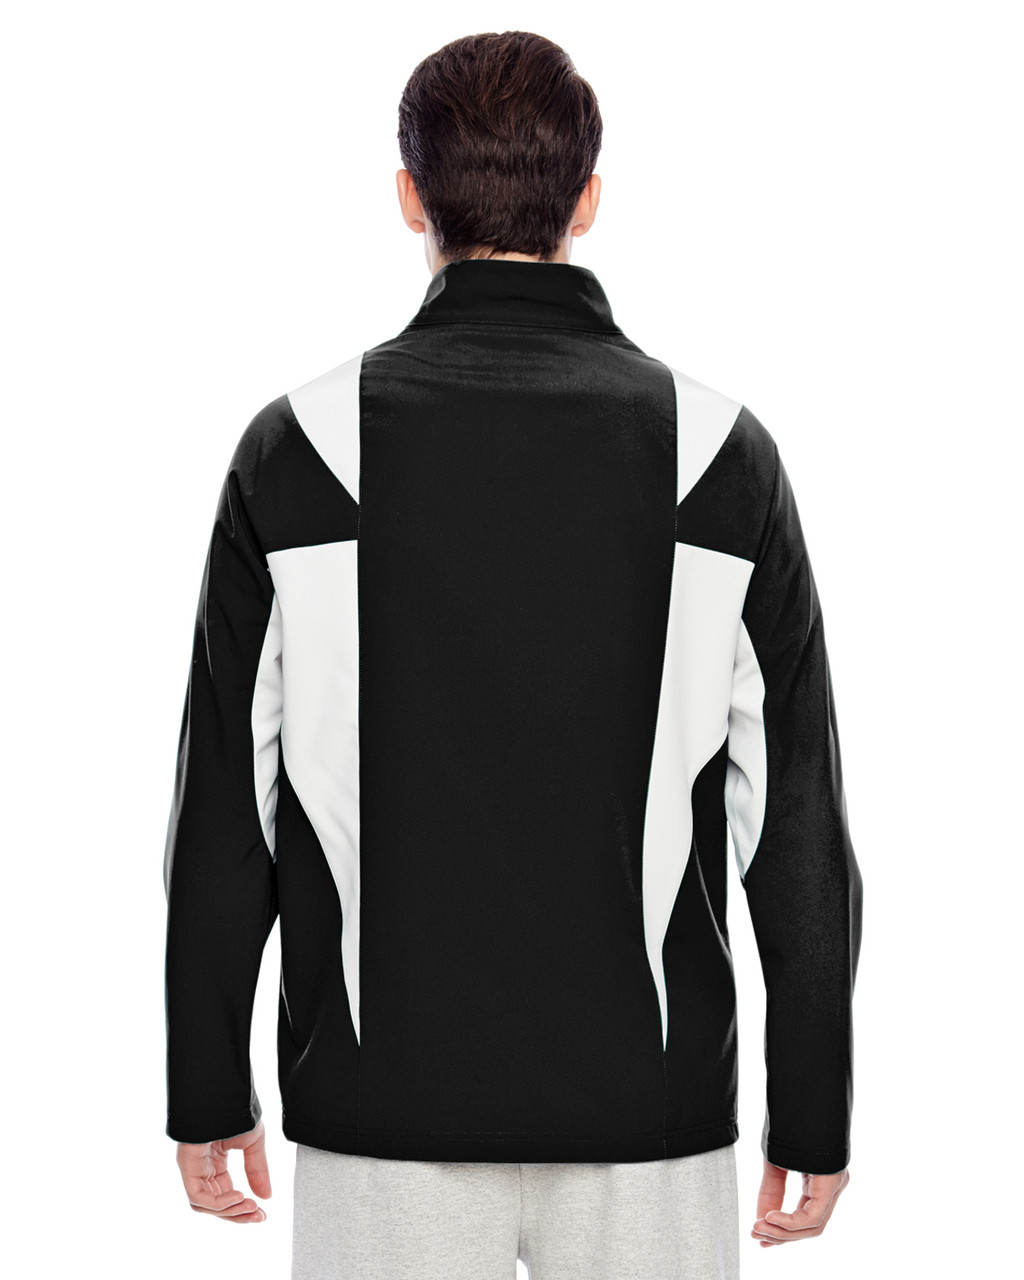 Black/Sport Silver - Back, TT82 Team 365 Icon Colourblock Soft Shell Jacket  | BlankClothing.ca